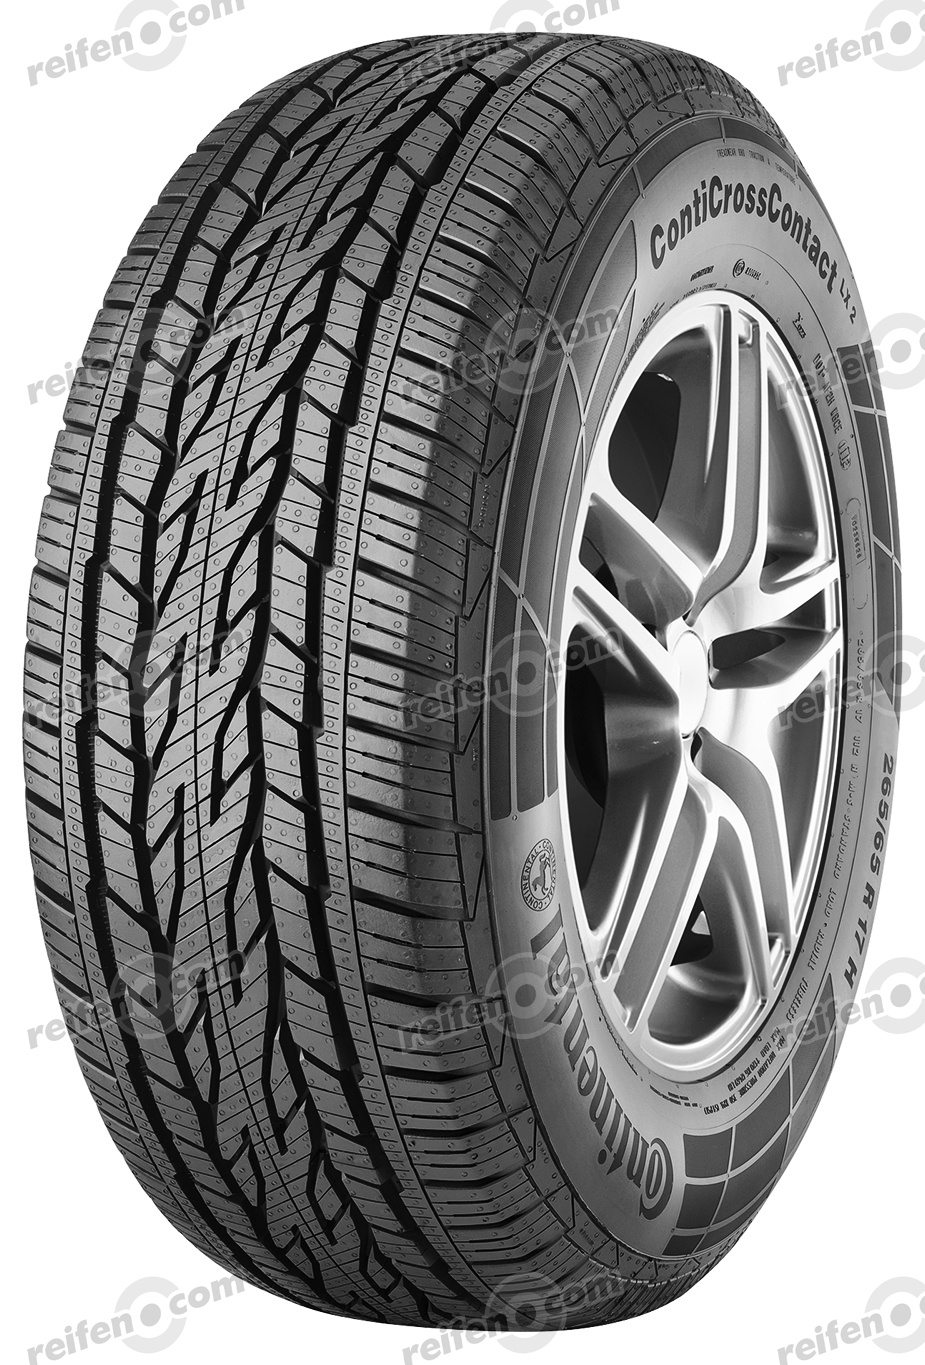 225/70 R15 100T CrossContact  LX 2 FR BSW  CrossContact  LX 2 FR BSW